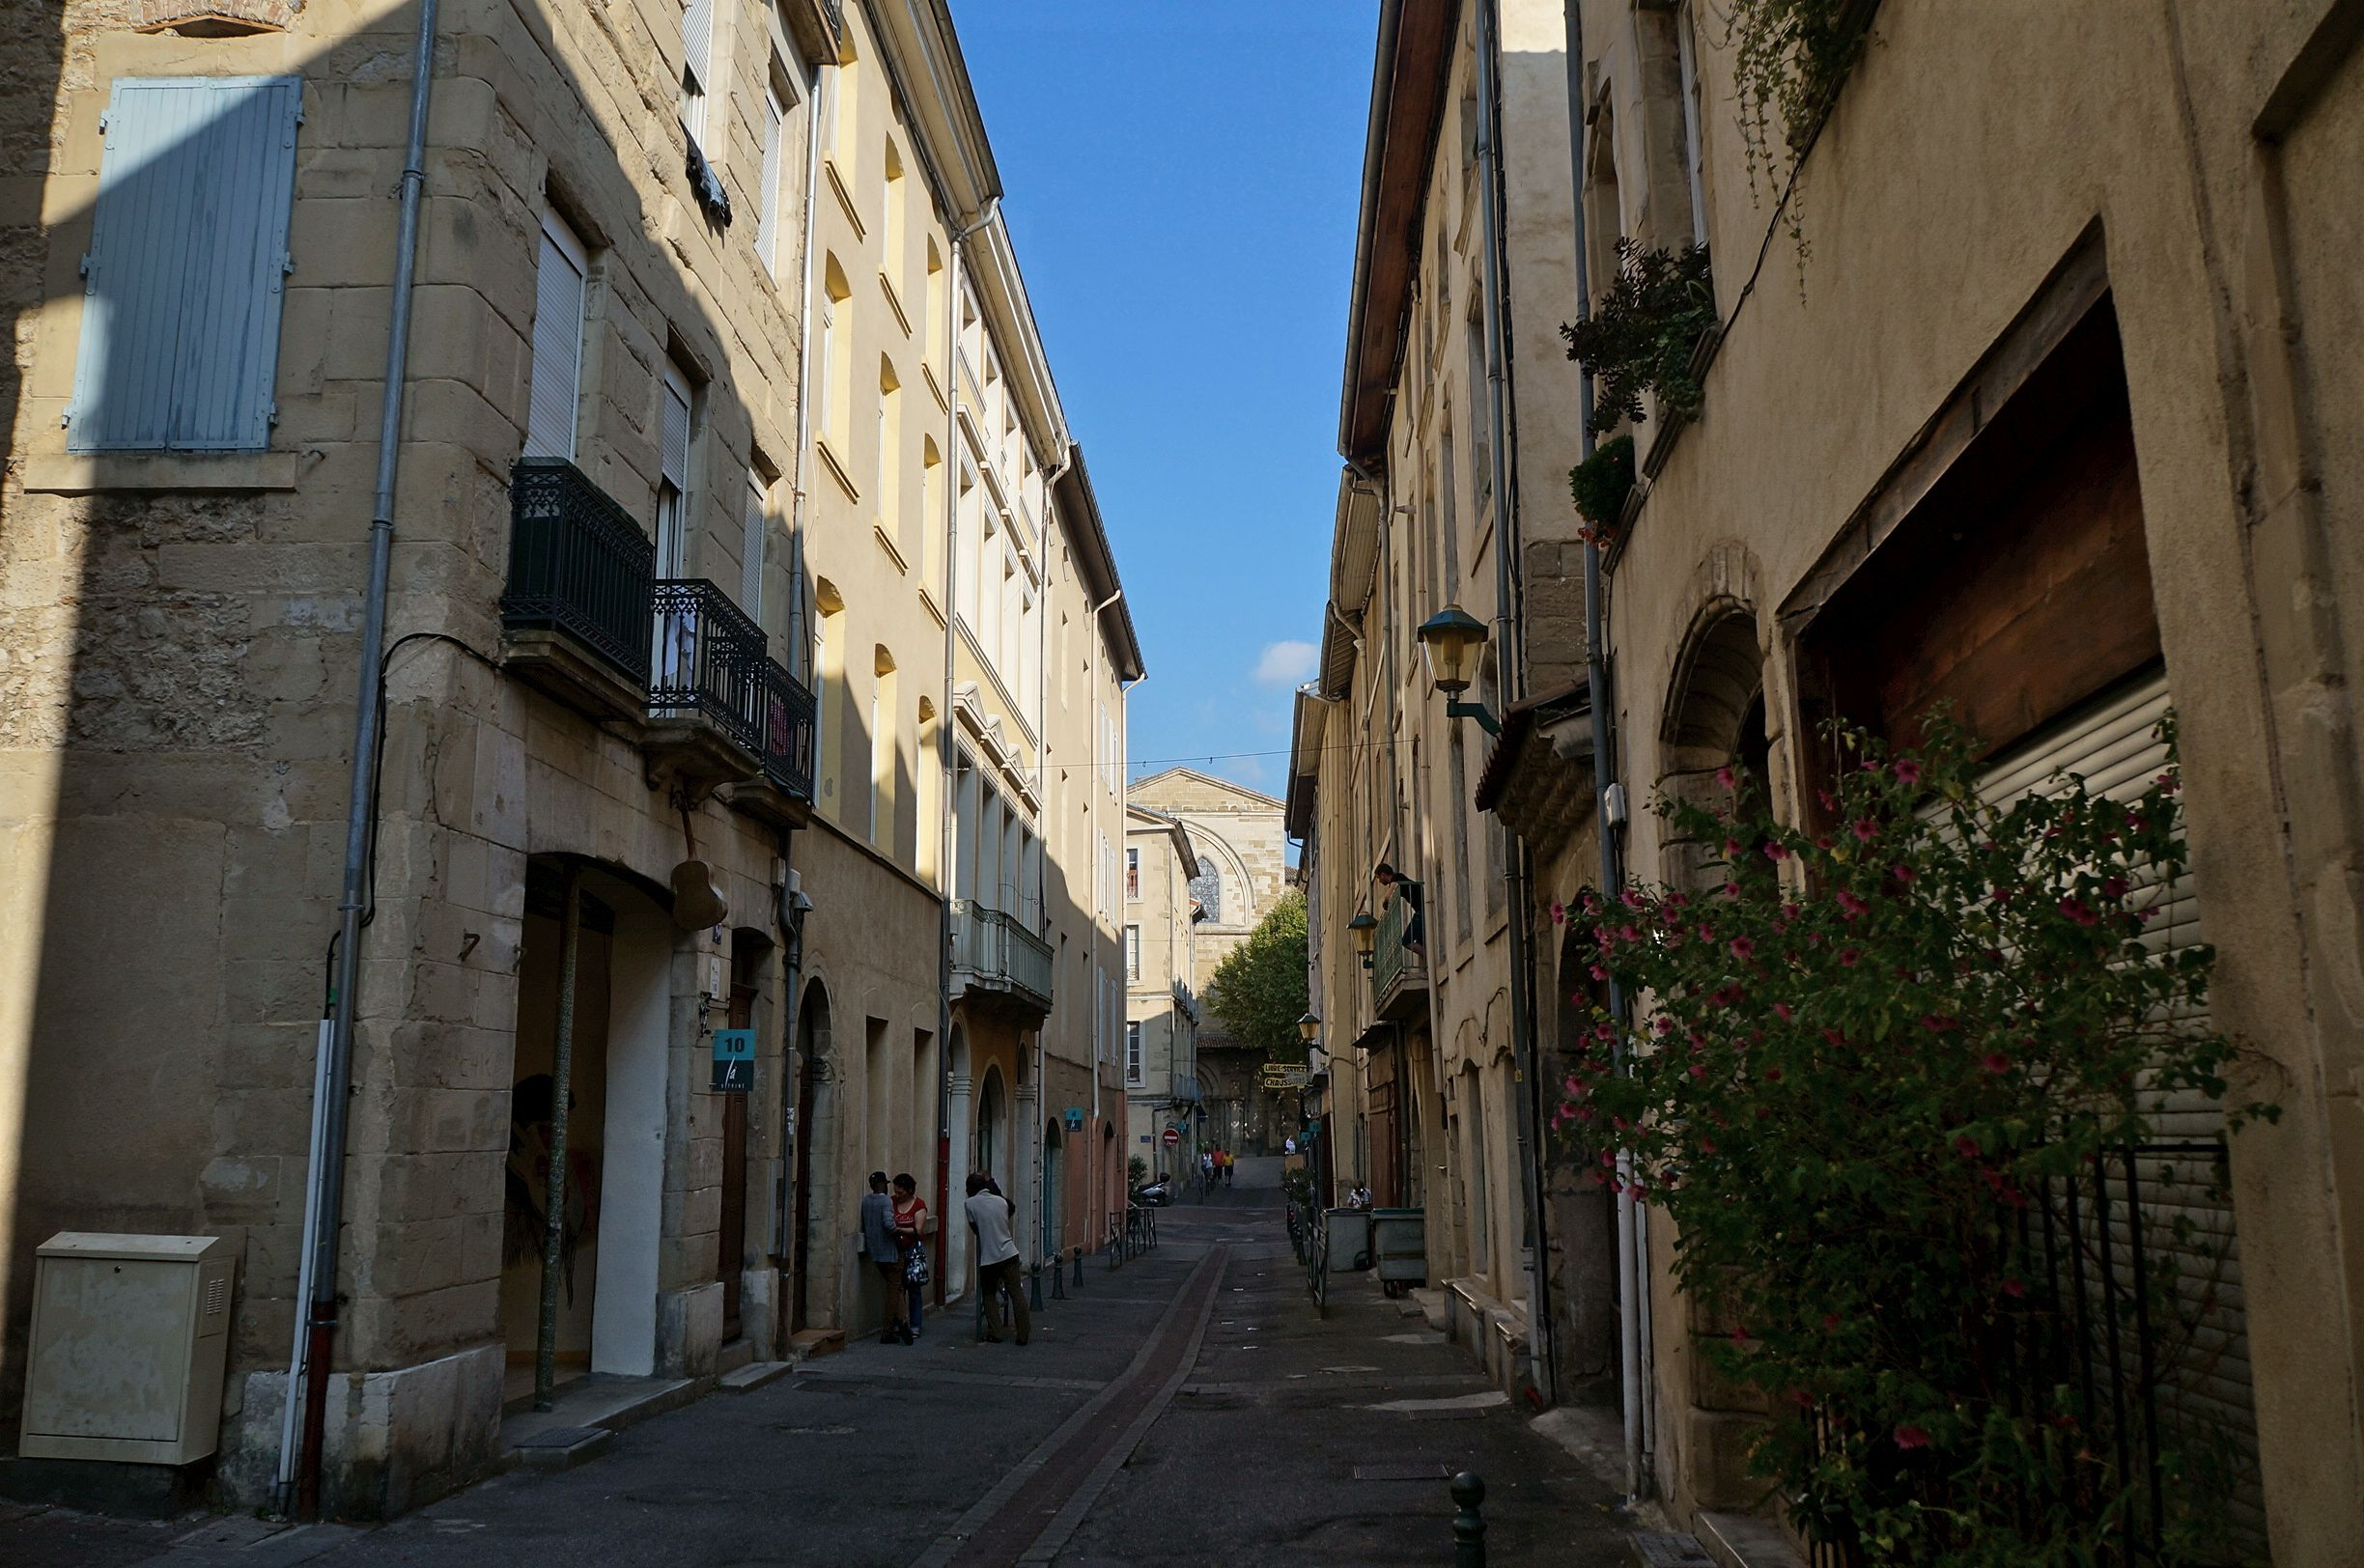 Romans sur is re dr me au fil des rues le blog de benissa for Electromenager romans sur isere